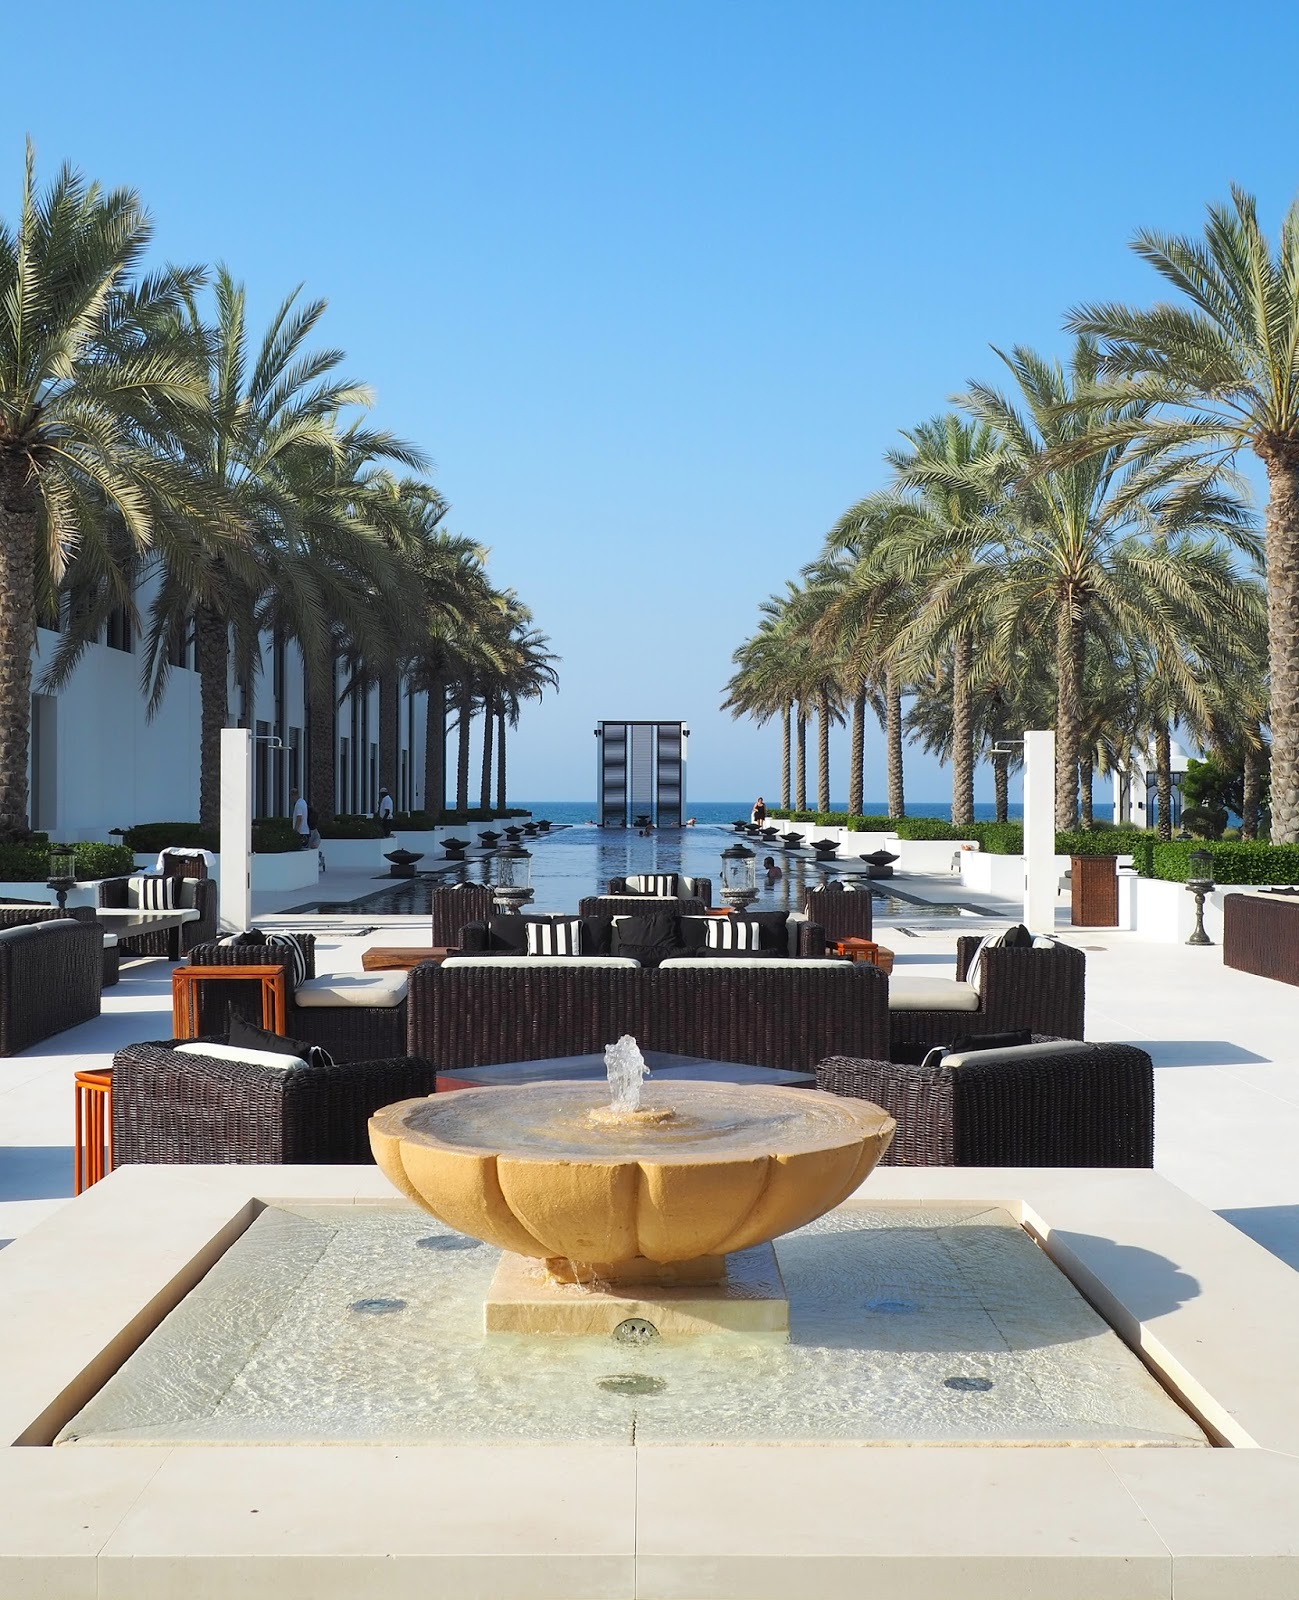 Euriental | luxury travel & style | The Chedi Muscat, Oman